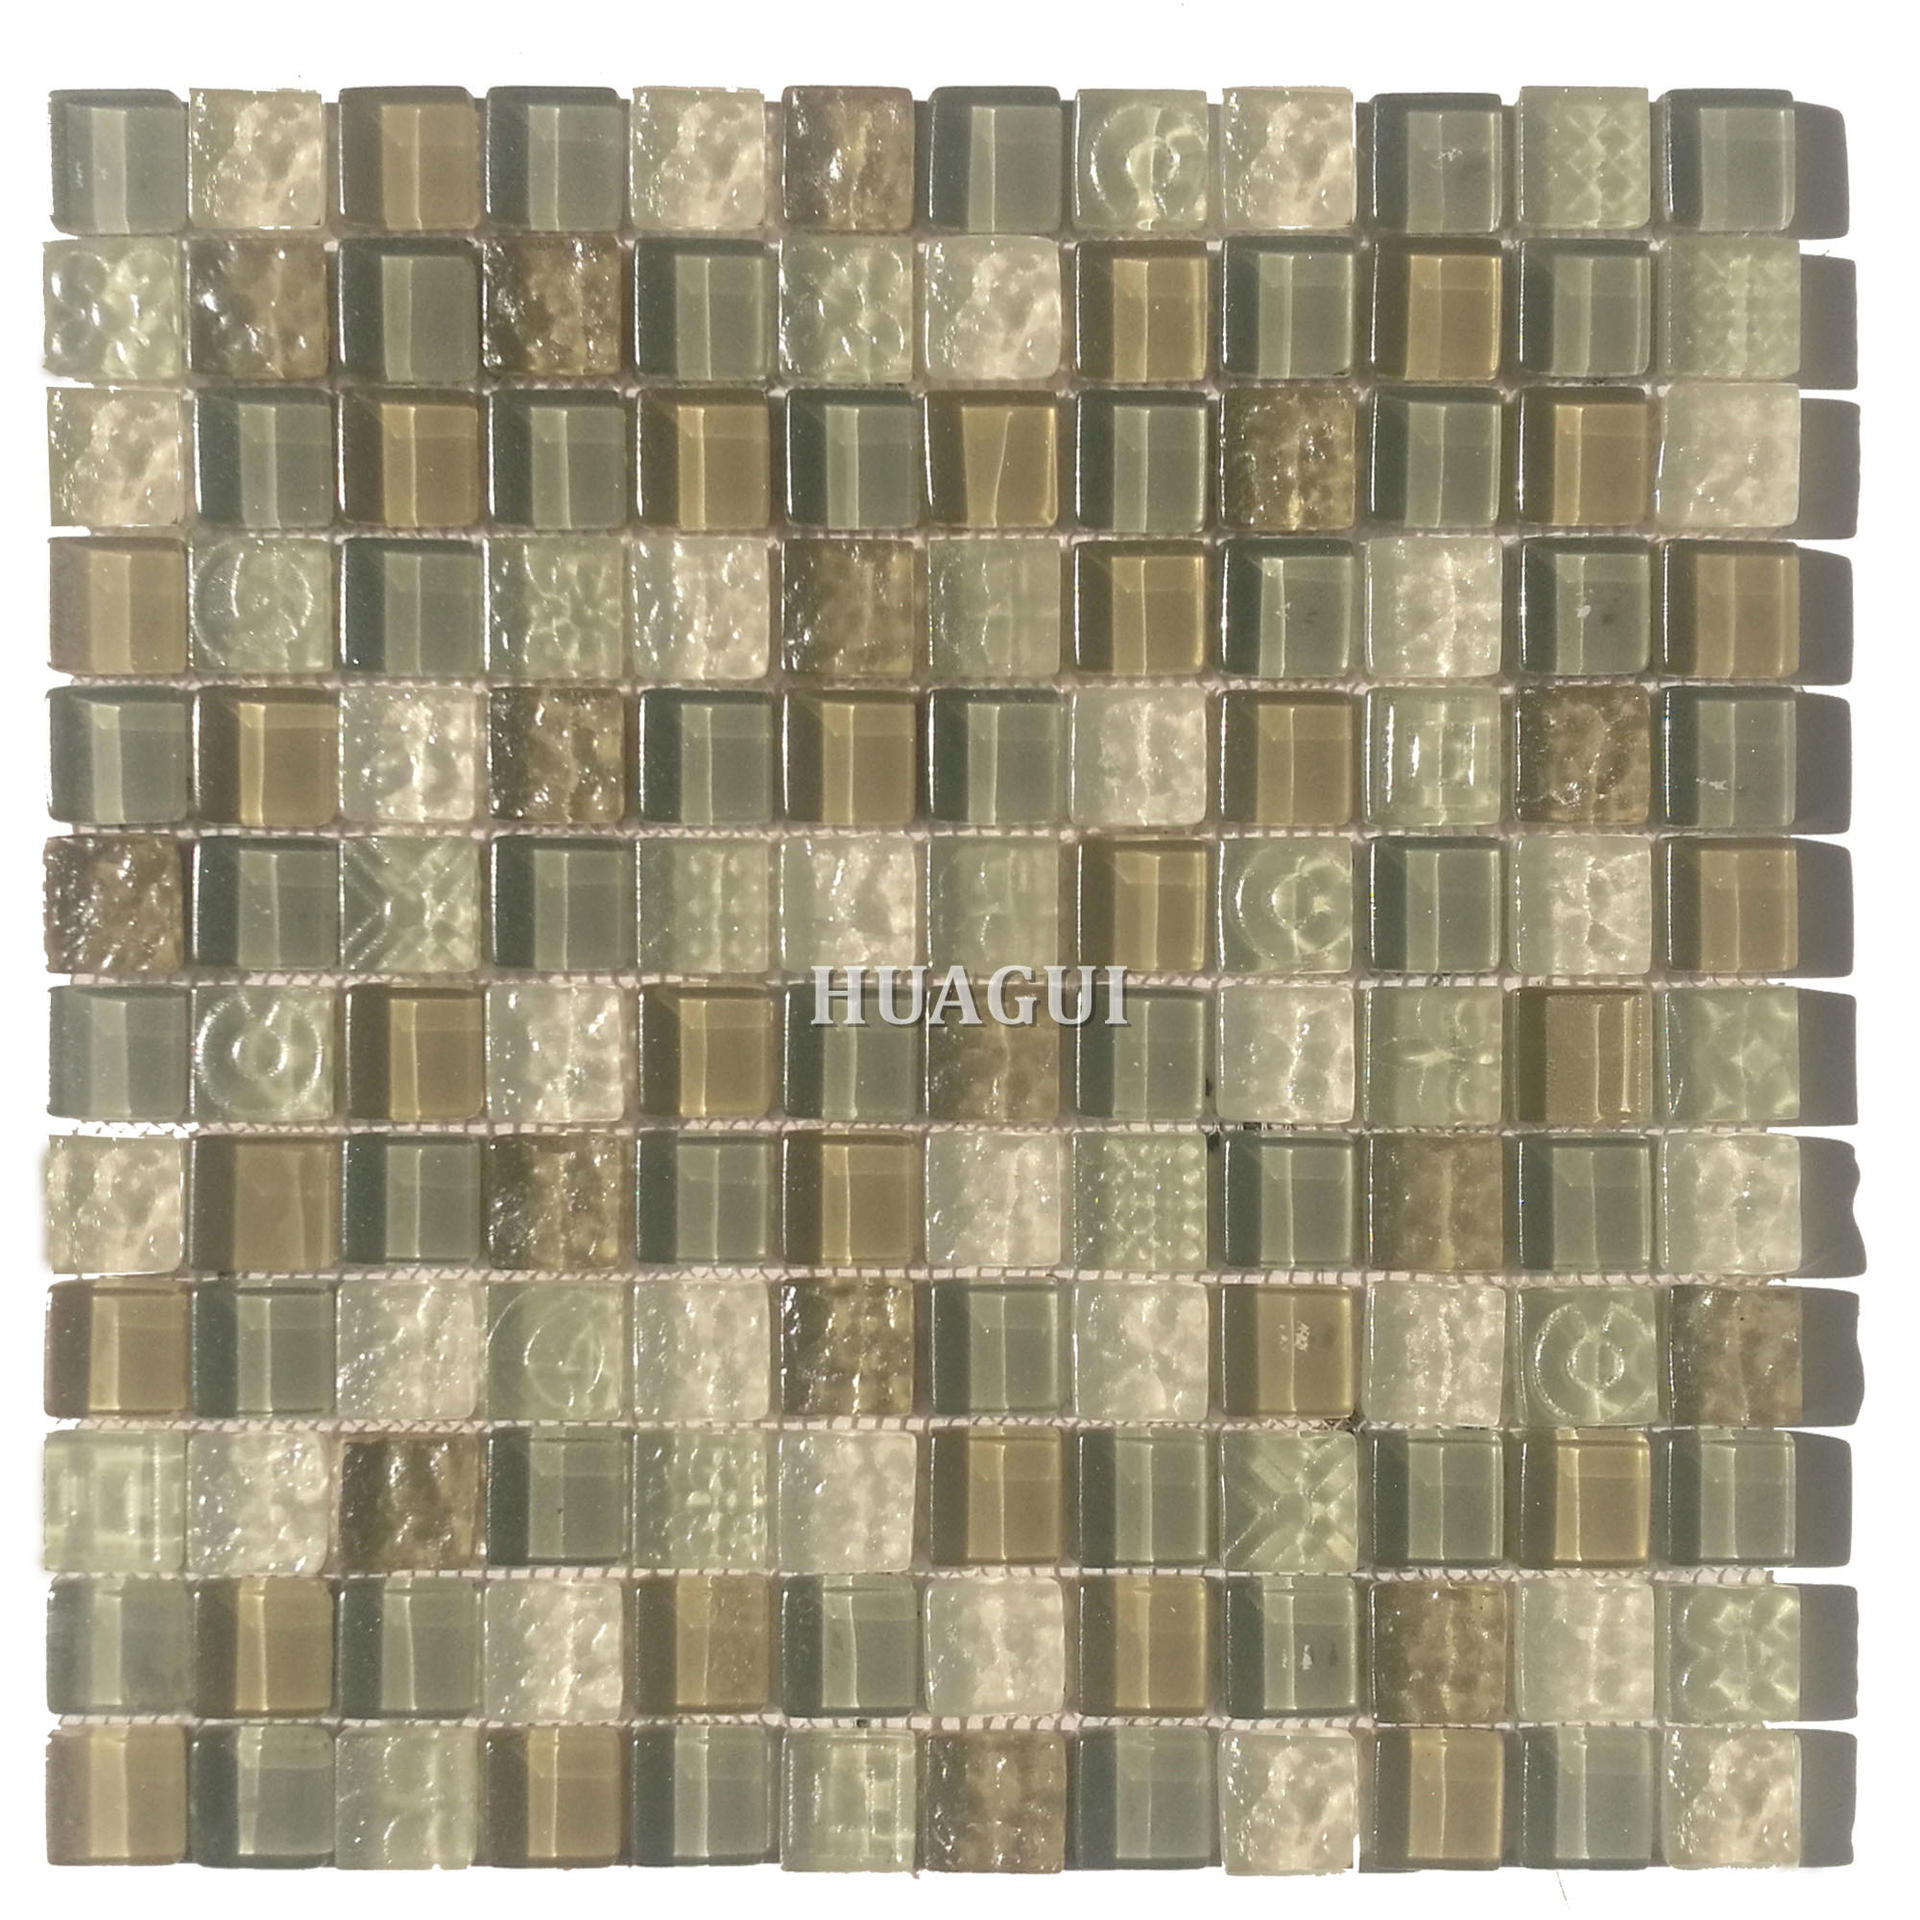 Modern special design gray glass mosaic bathroom backsplash tile for sale